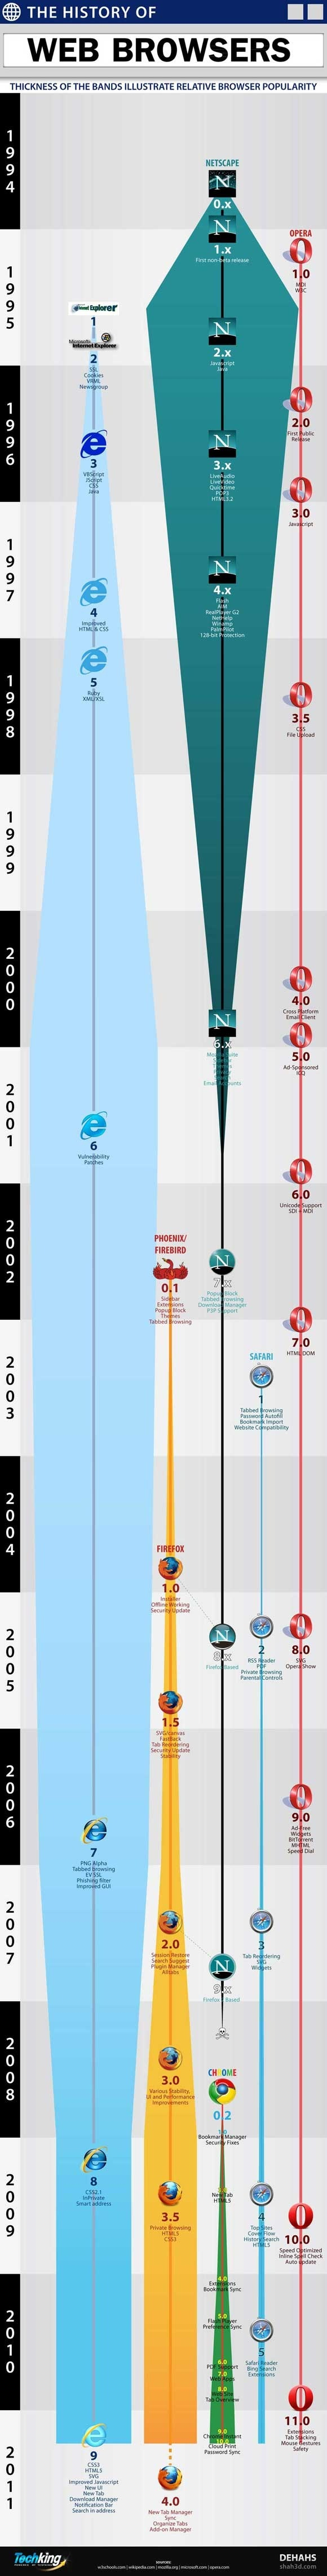 The-History-of-Web-Browsers